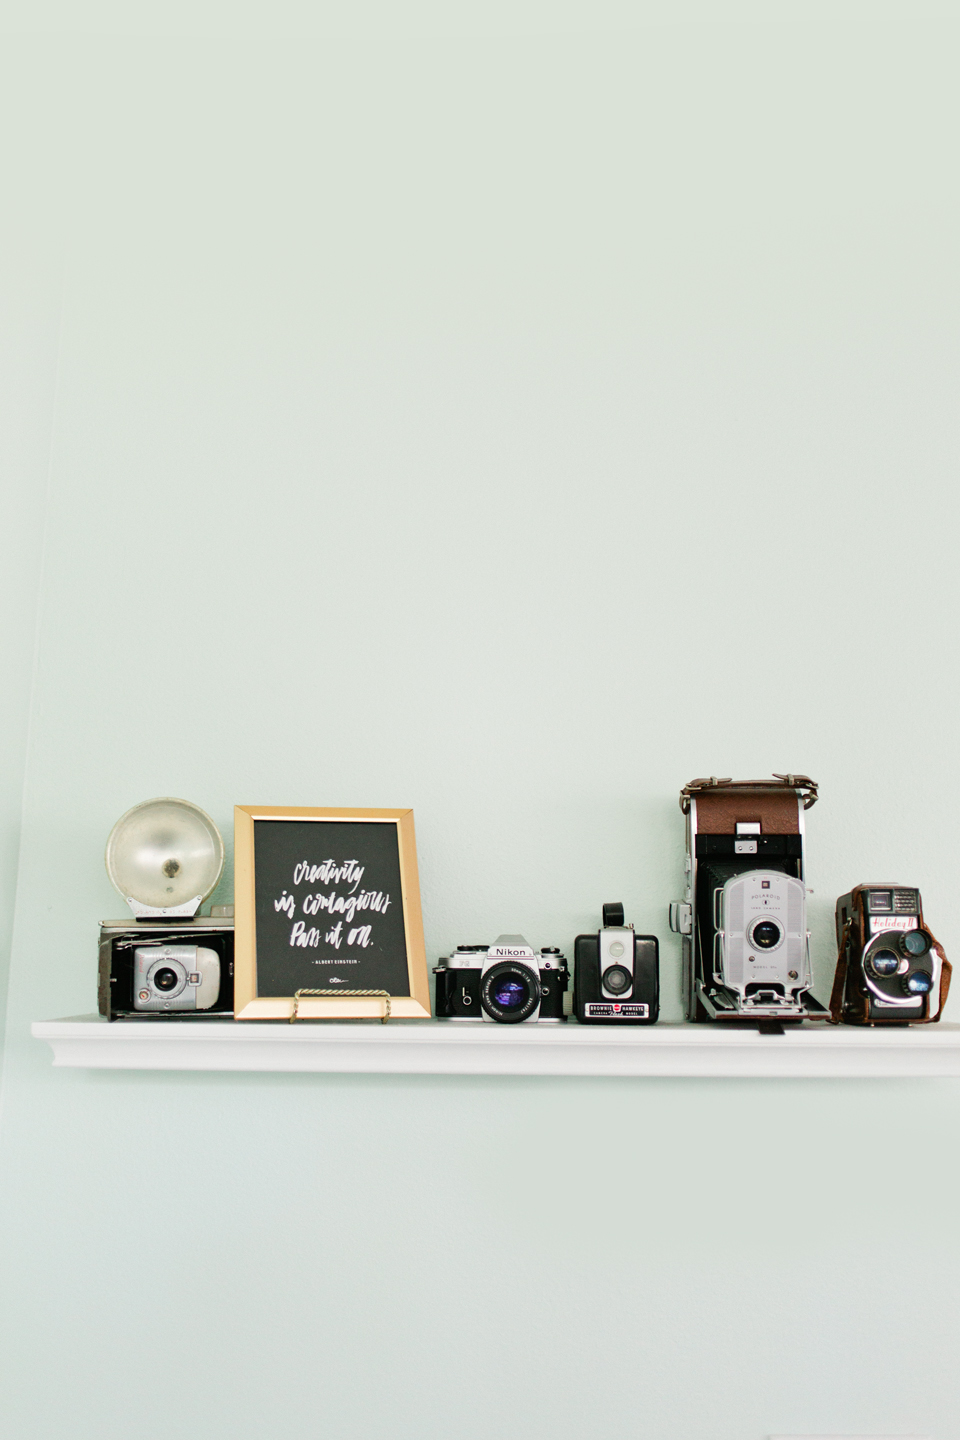 Picture of an office shelf with antique cameras lined up in a row.  The shelf is white and the wall is painted a light green.